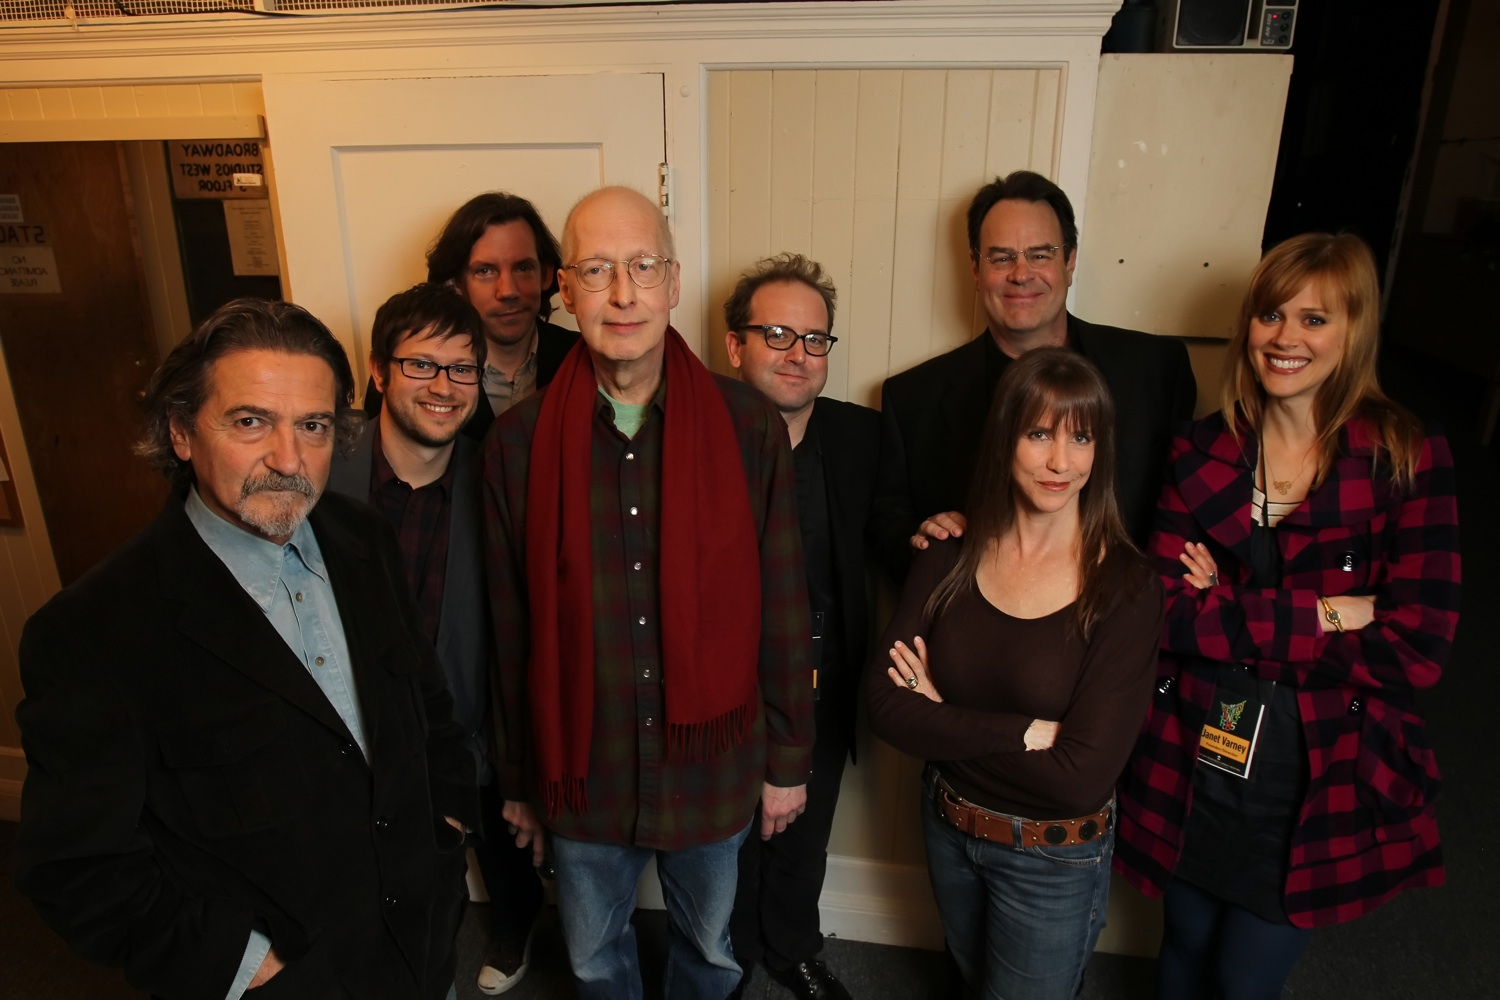 Don Novello, Carl Arnheiter, David Owen, Tom Davis, Dan Aykroyd, Laraine Newman and Janet Varney. Photo by Jakub Mosur.